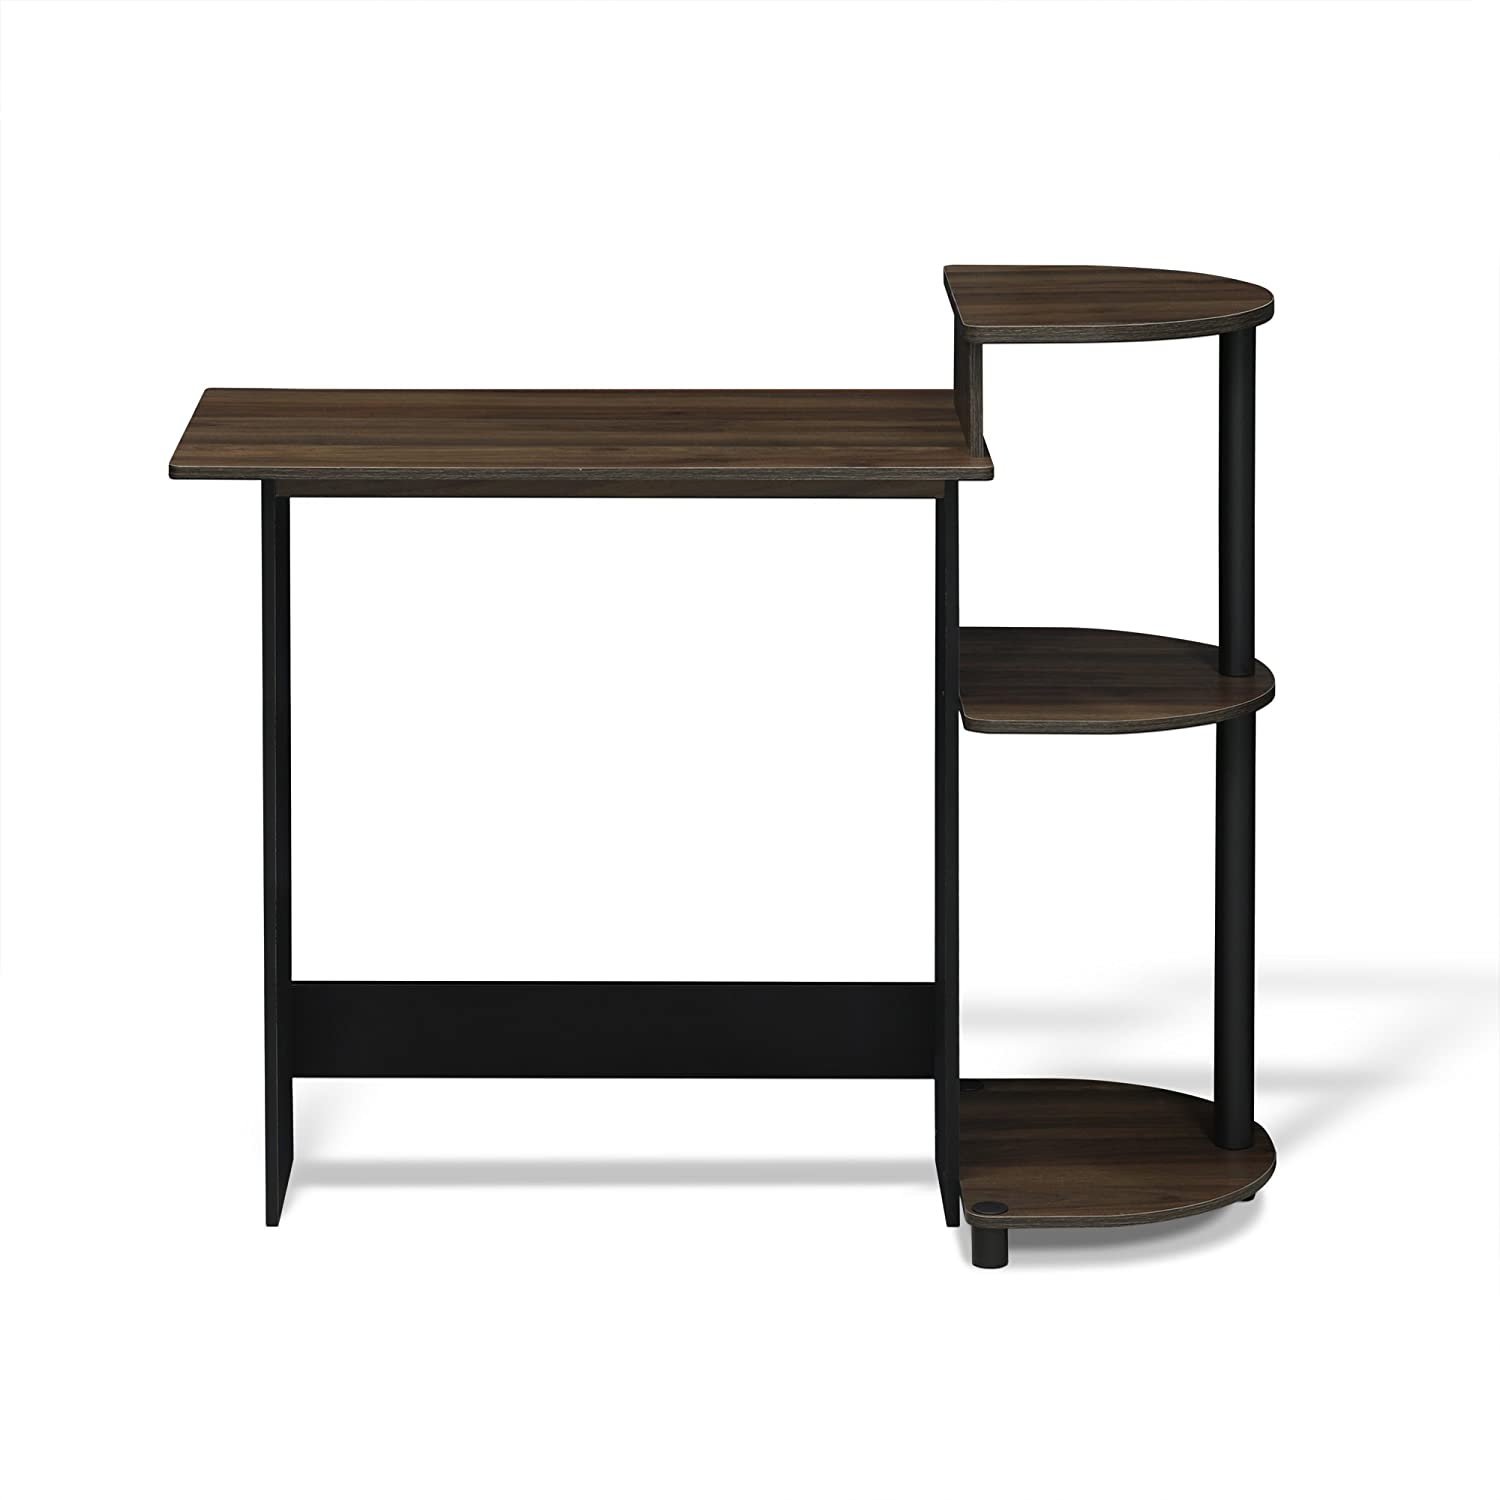 Round Side Columbia Walnut//Black Furinno 11181CWN//BK Compact Computer Desk with Shelves